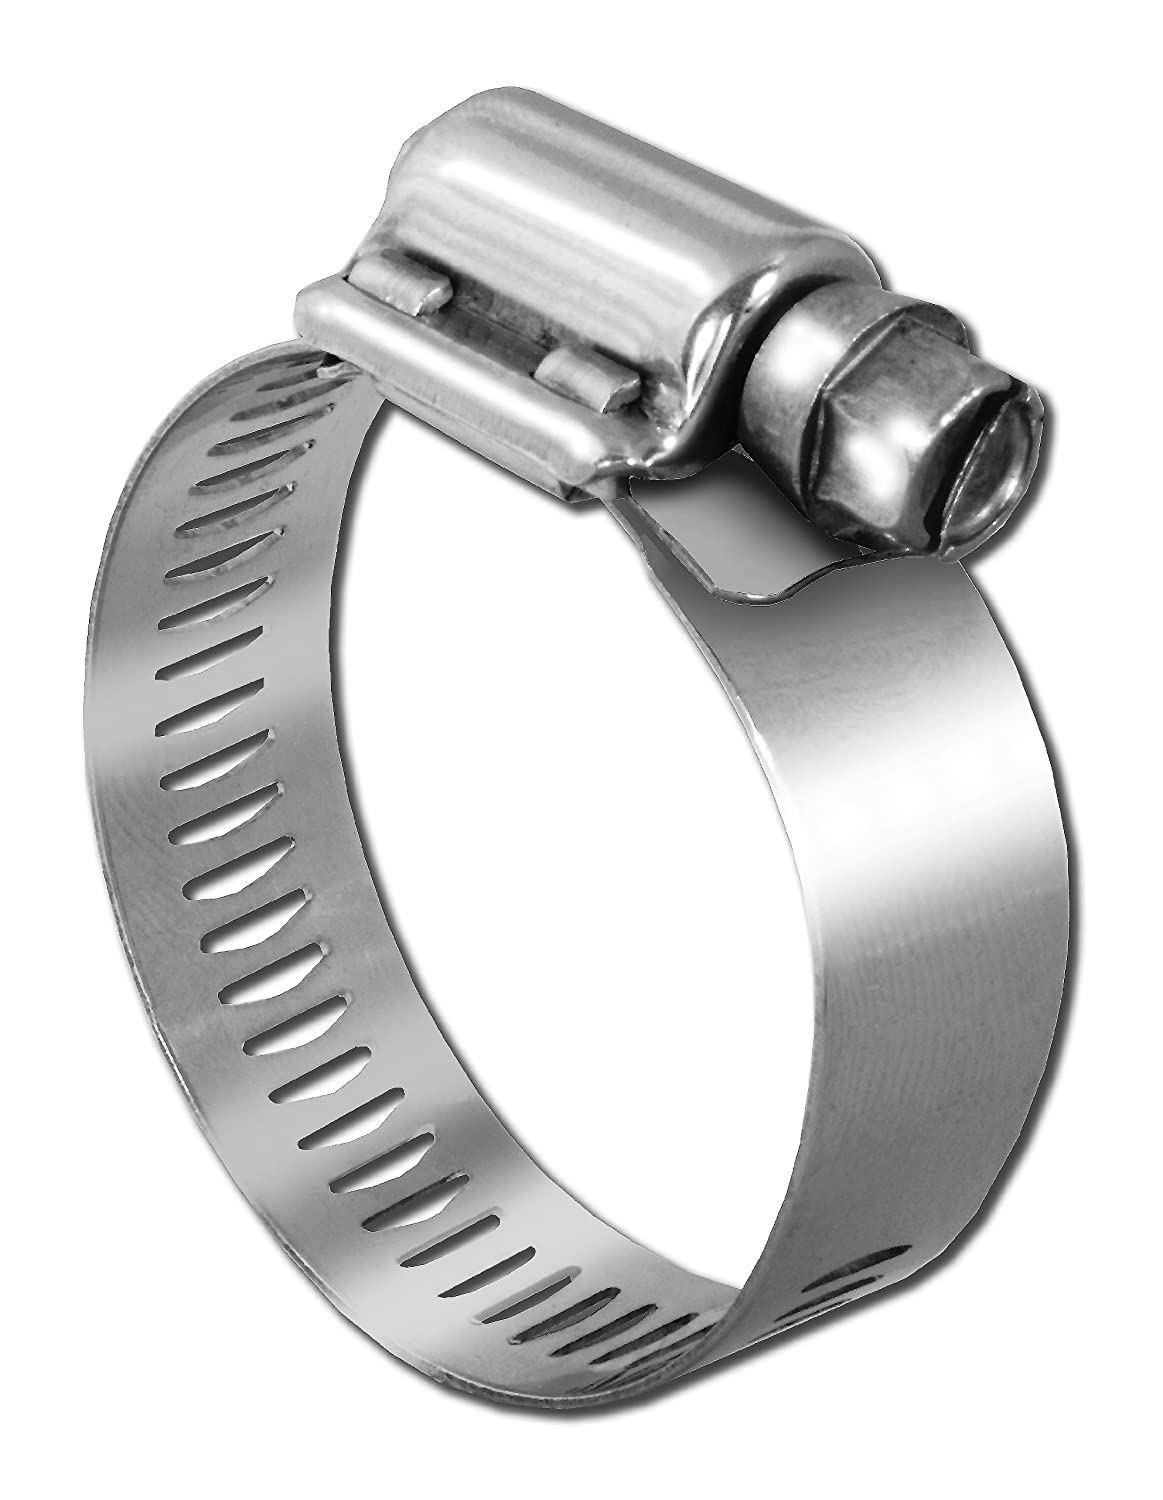 Pro Tie 33512 SAE Size 072 Range 4-Inch-5-Inch Heavy Duty All ... for Hose Ring Clamp  67qdu